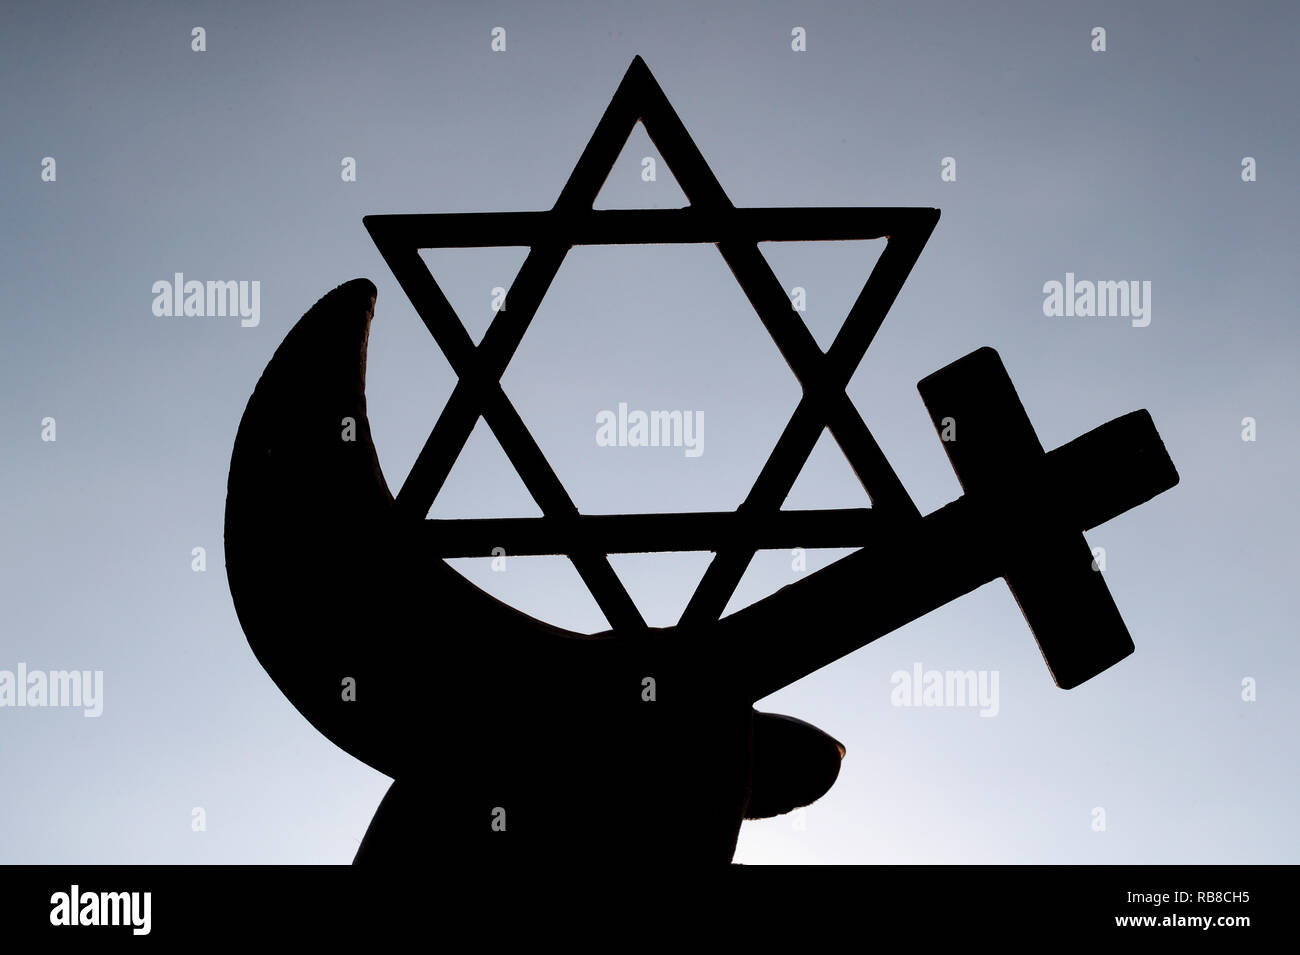 Symboles interreligieux. Christianity, Islam, Judaism 3 monotheistic religions. Jewish Star, Cross and Crescent : Interreligieuse symbols in hands. - Stock Image